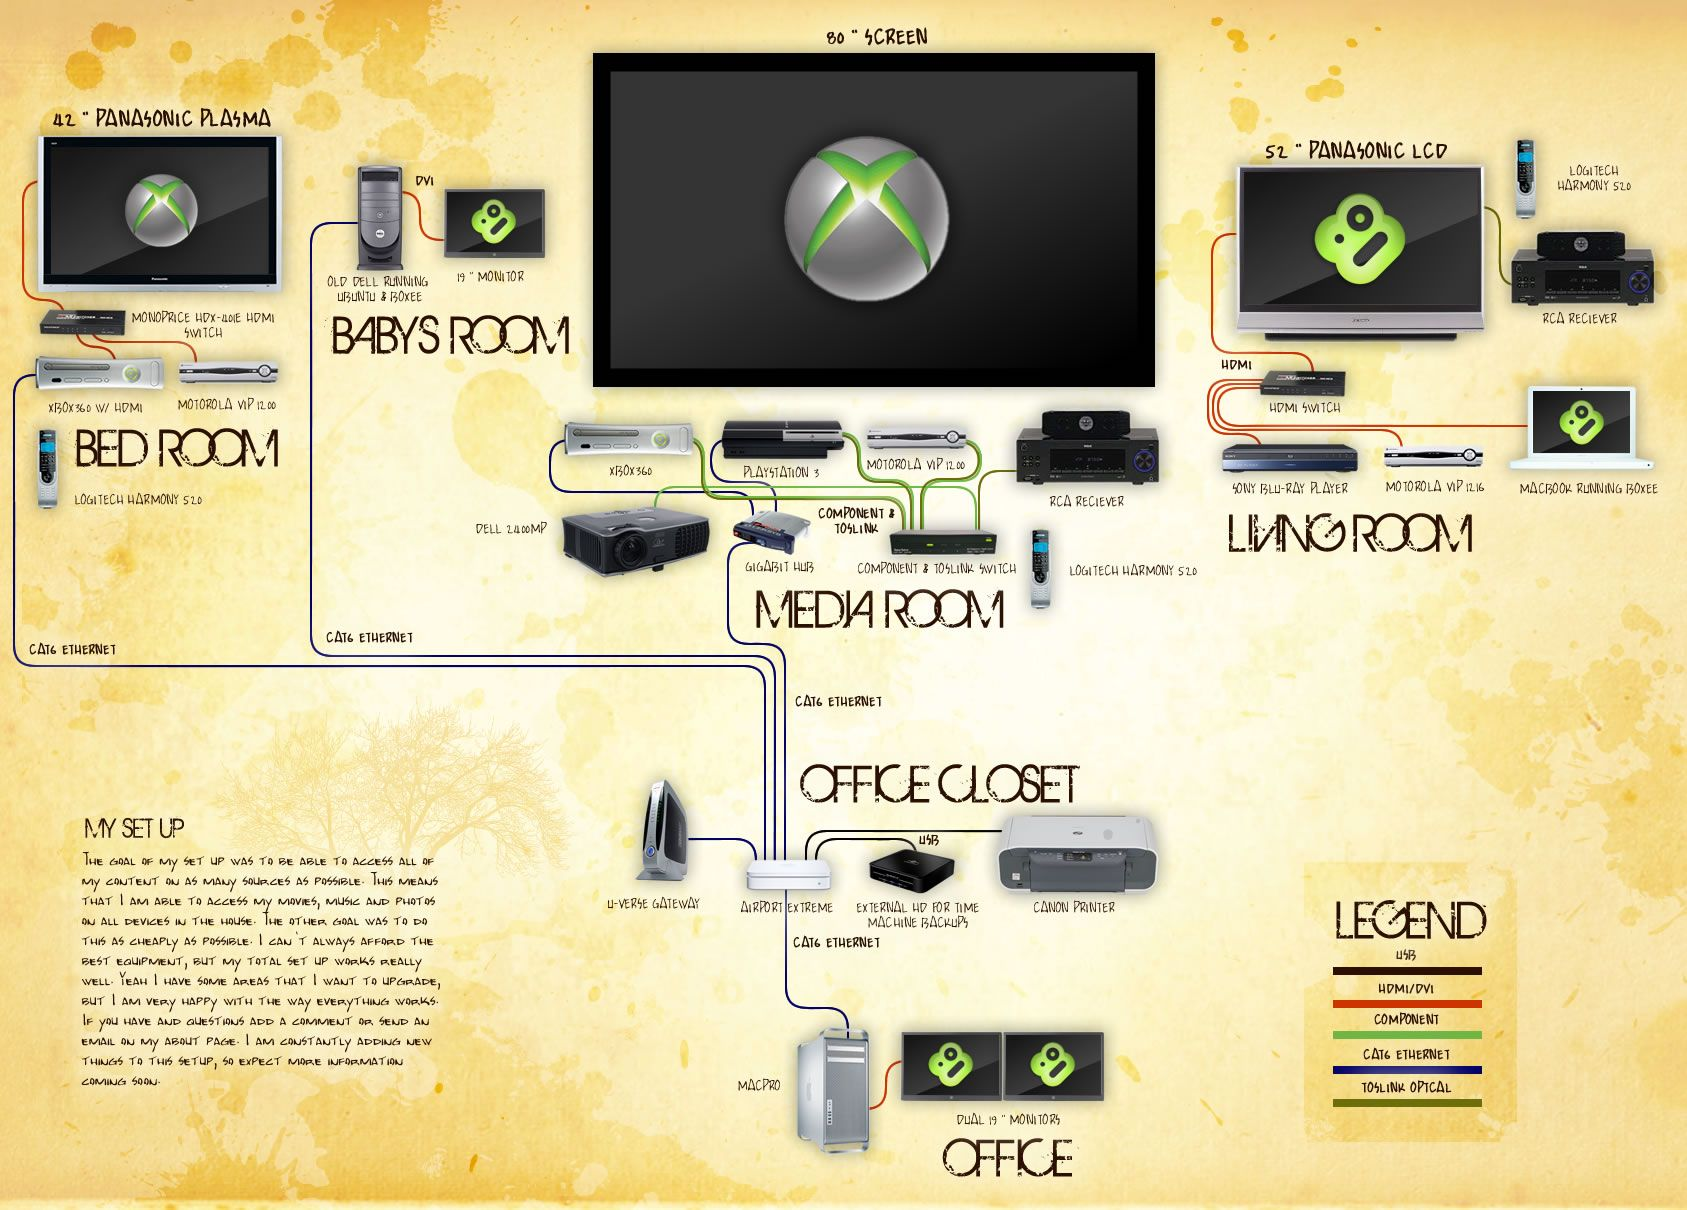 How To Set Up a Networked Home Theater with an Xbox 360 | Diagram ...